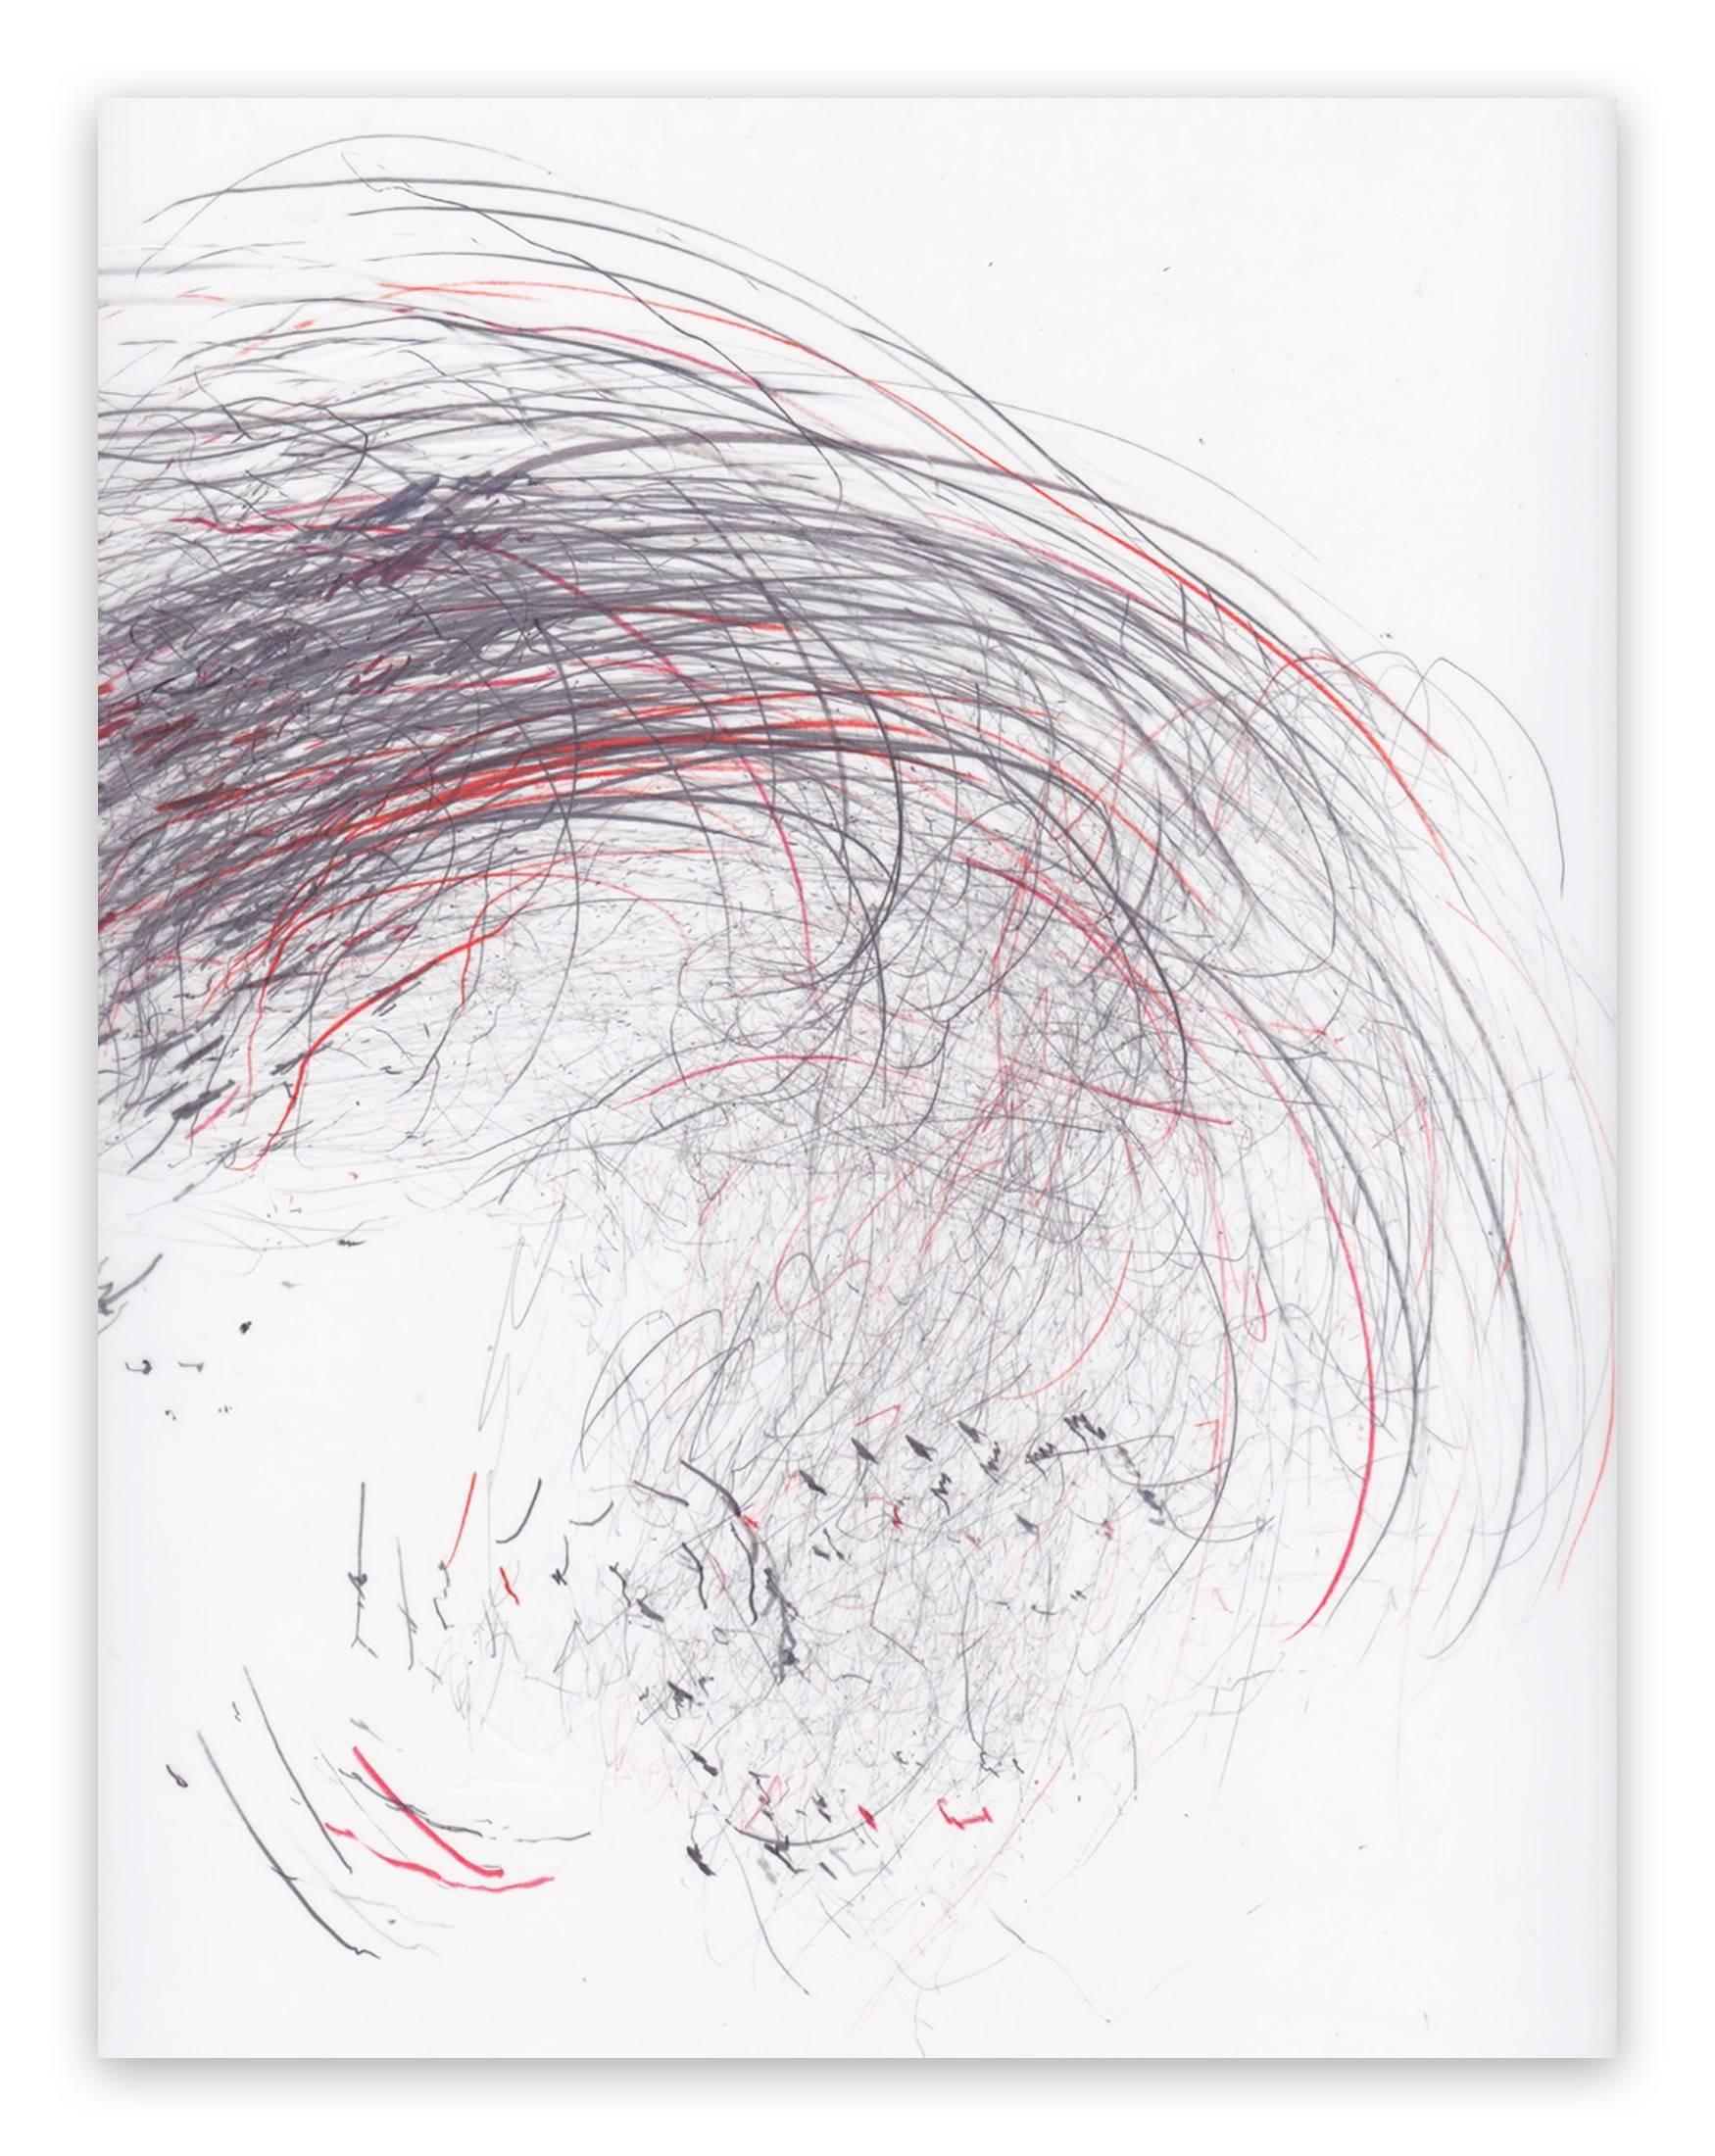 Screech of ice series 41 (Abstract drawing)